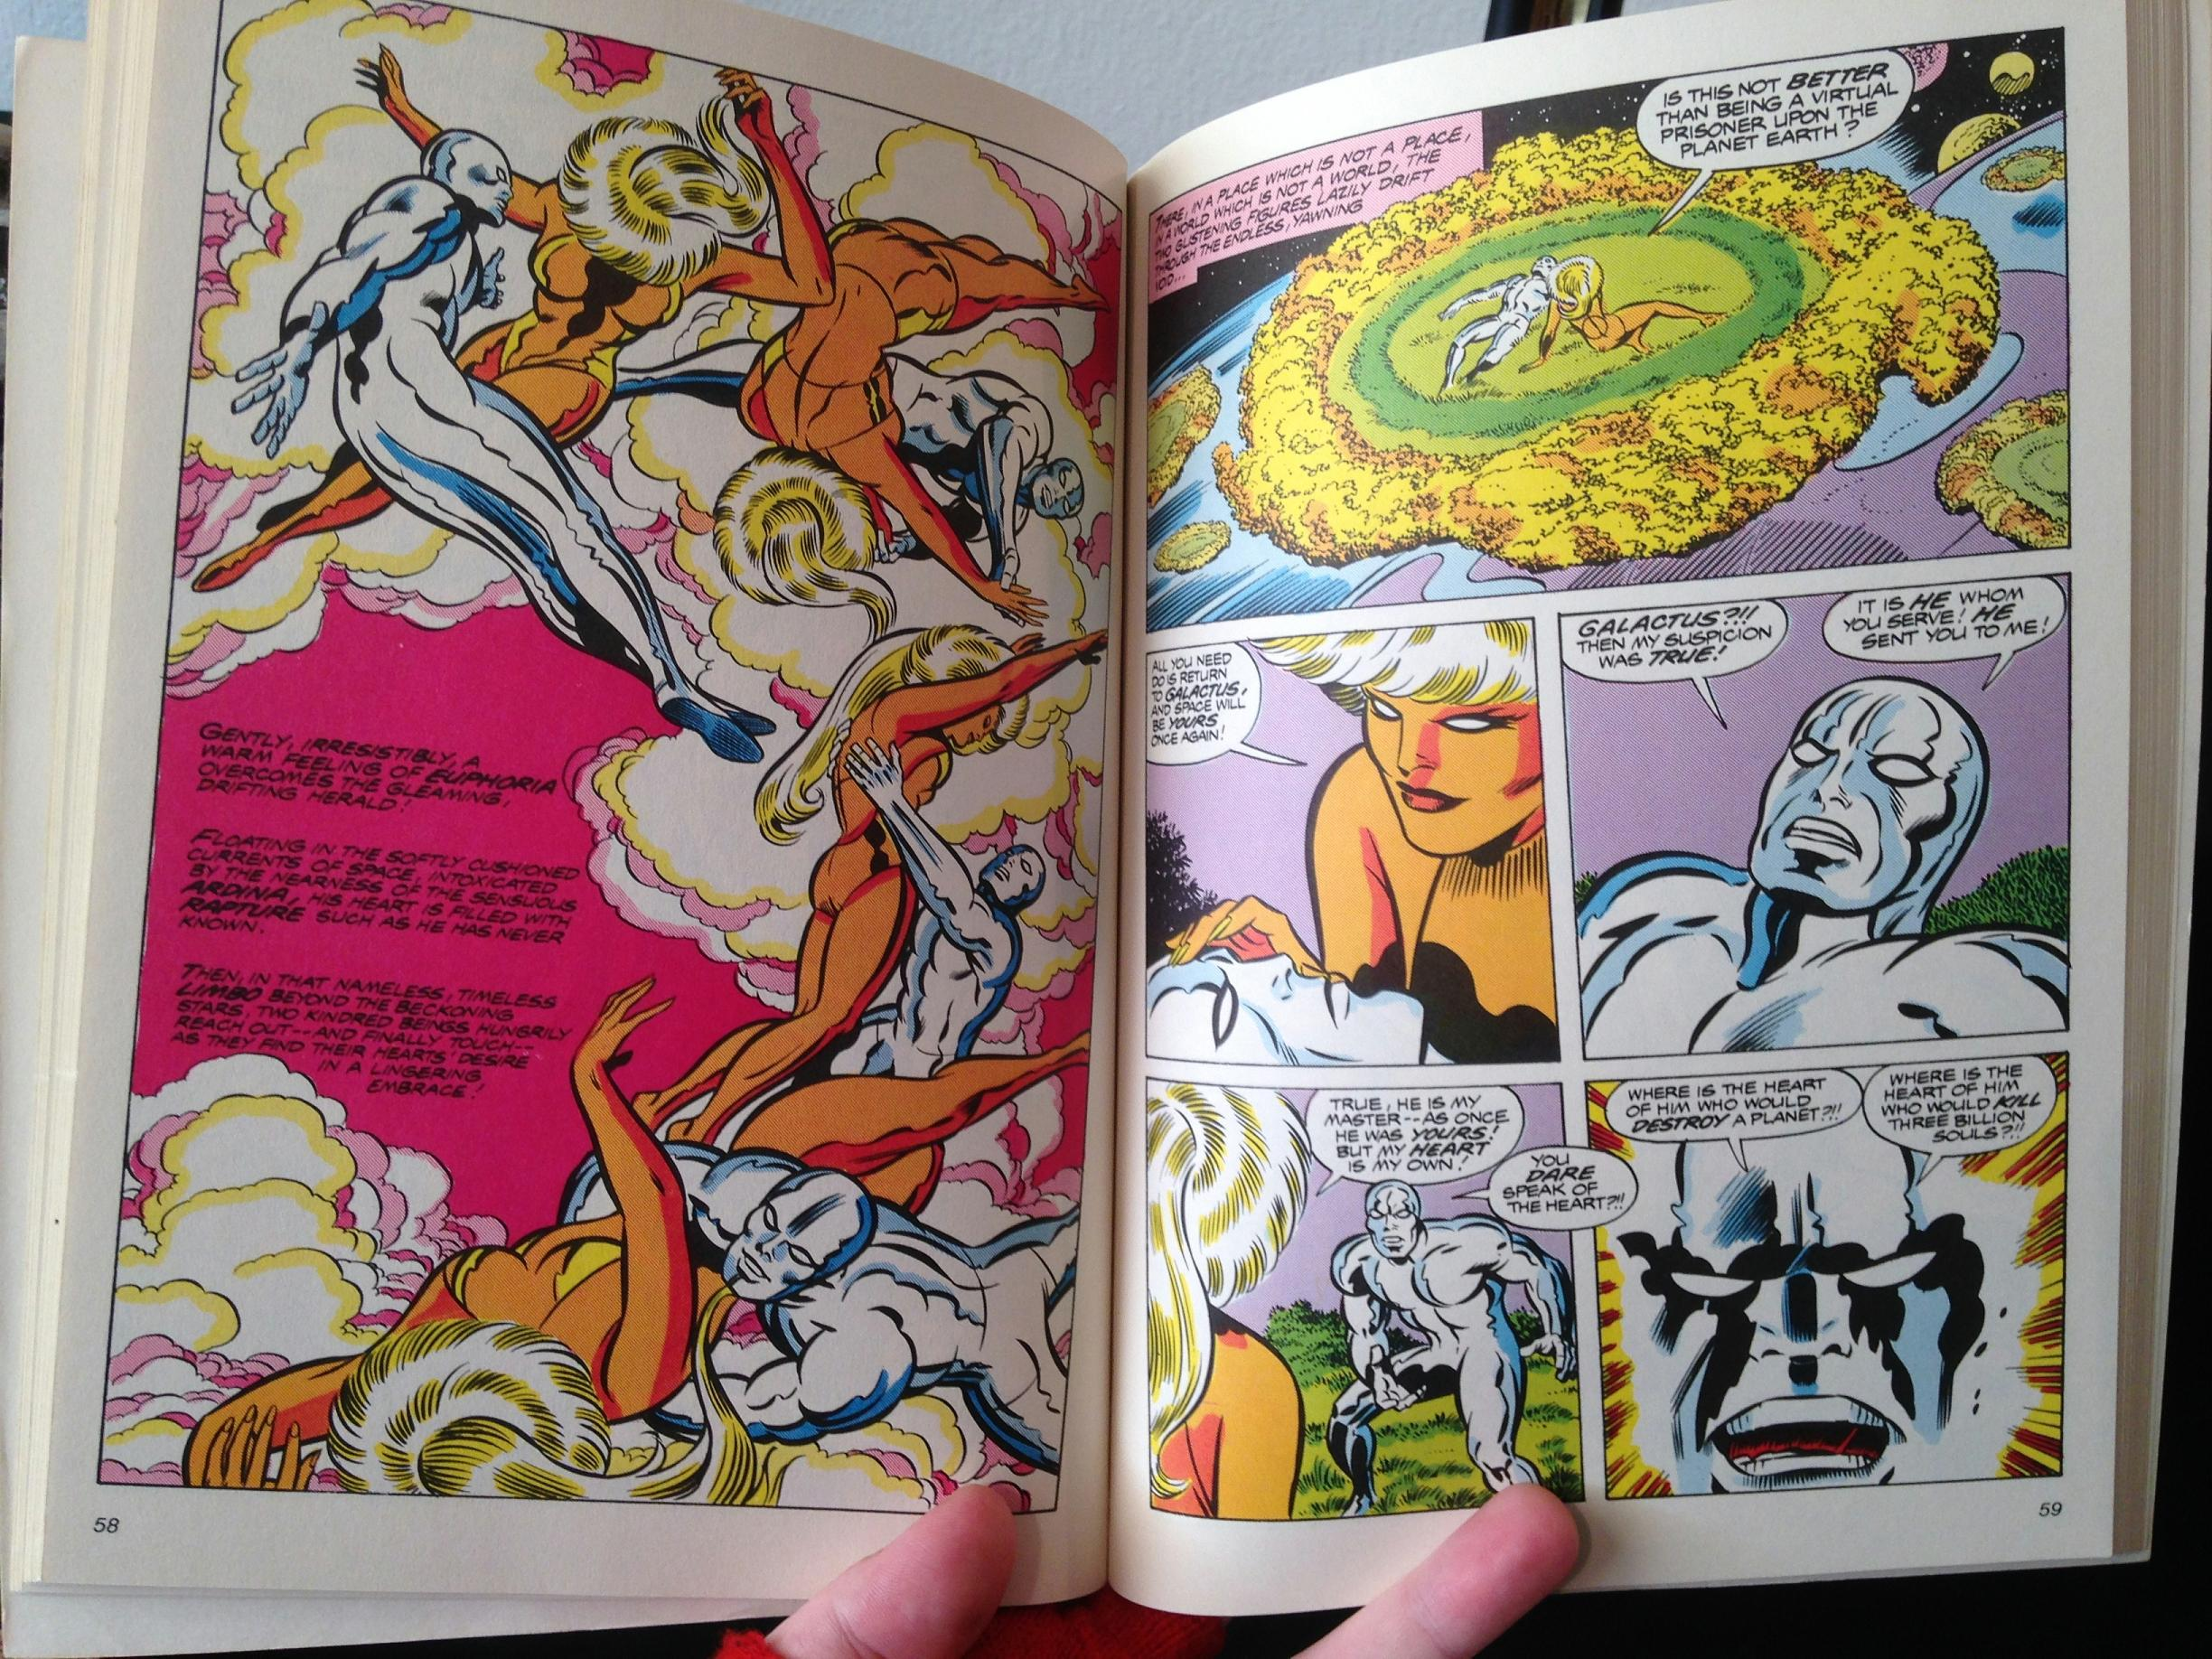 Silver Surfer by Stan Lee and Jack Kirby (12)